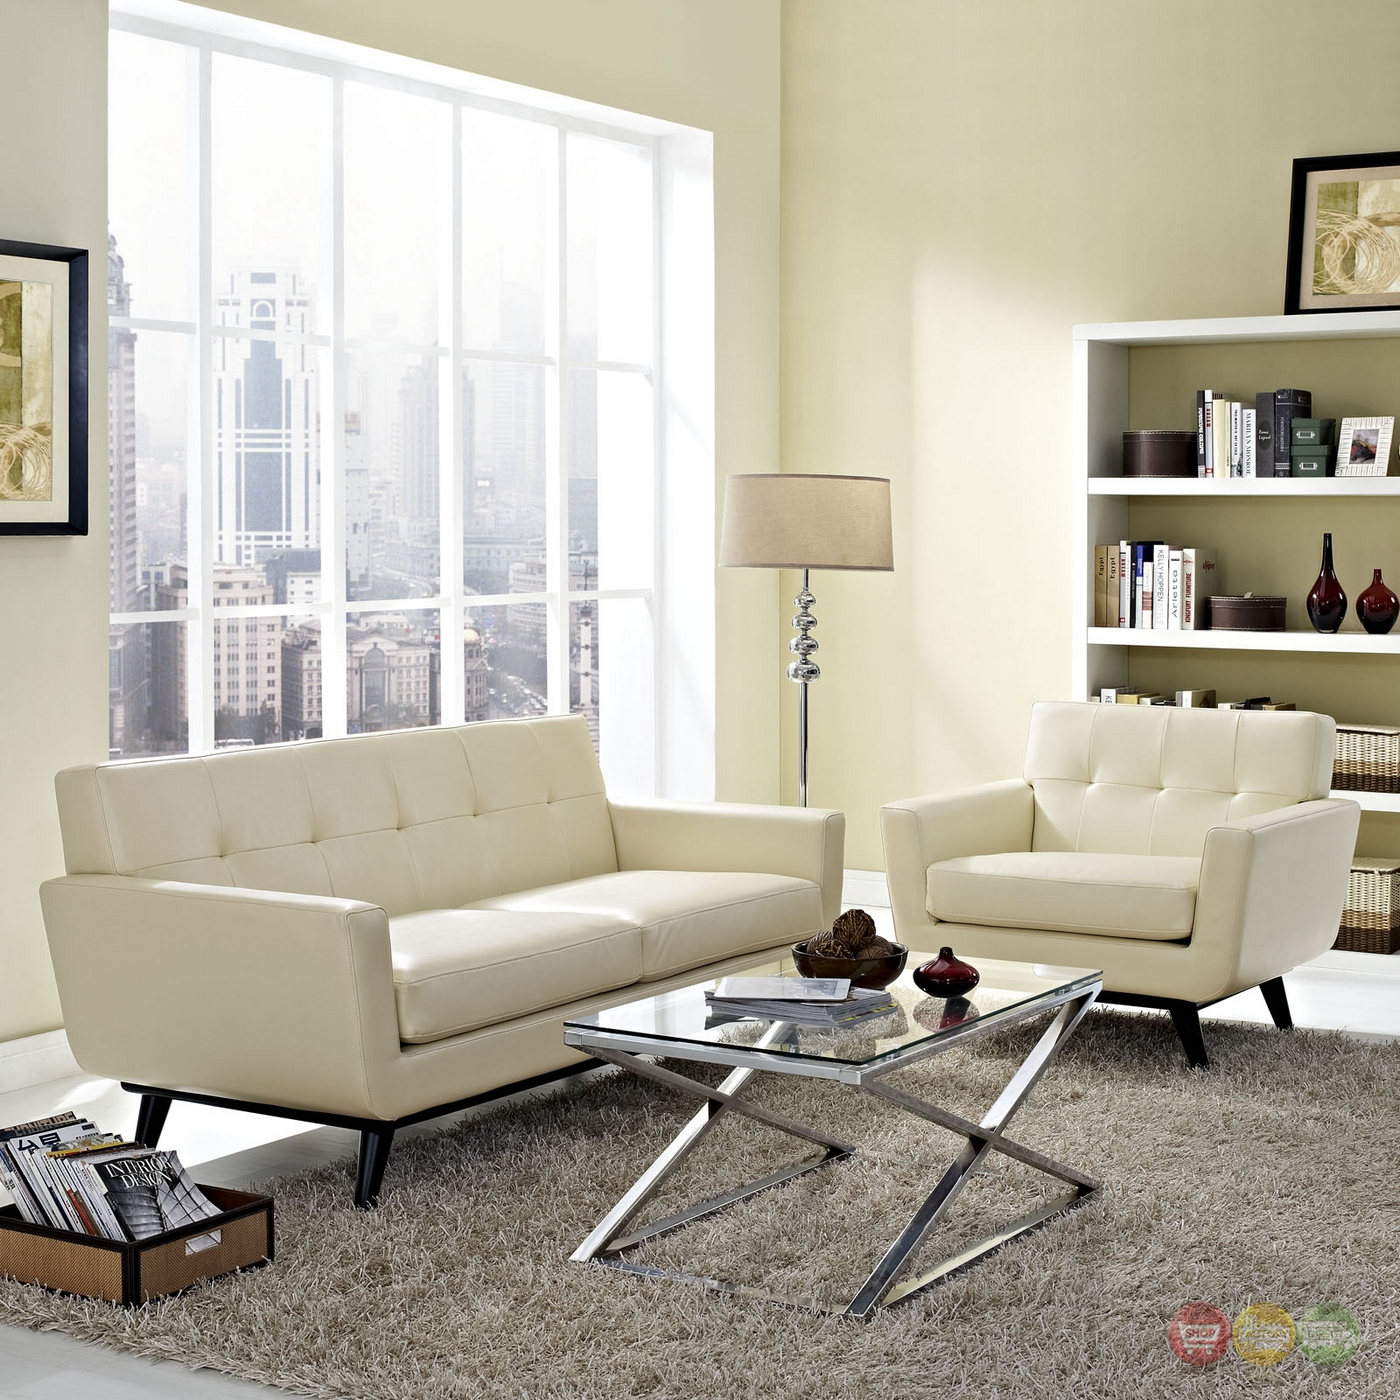 Engage Contemporary 2pc Button Tufted Leather Living Room Set Beige